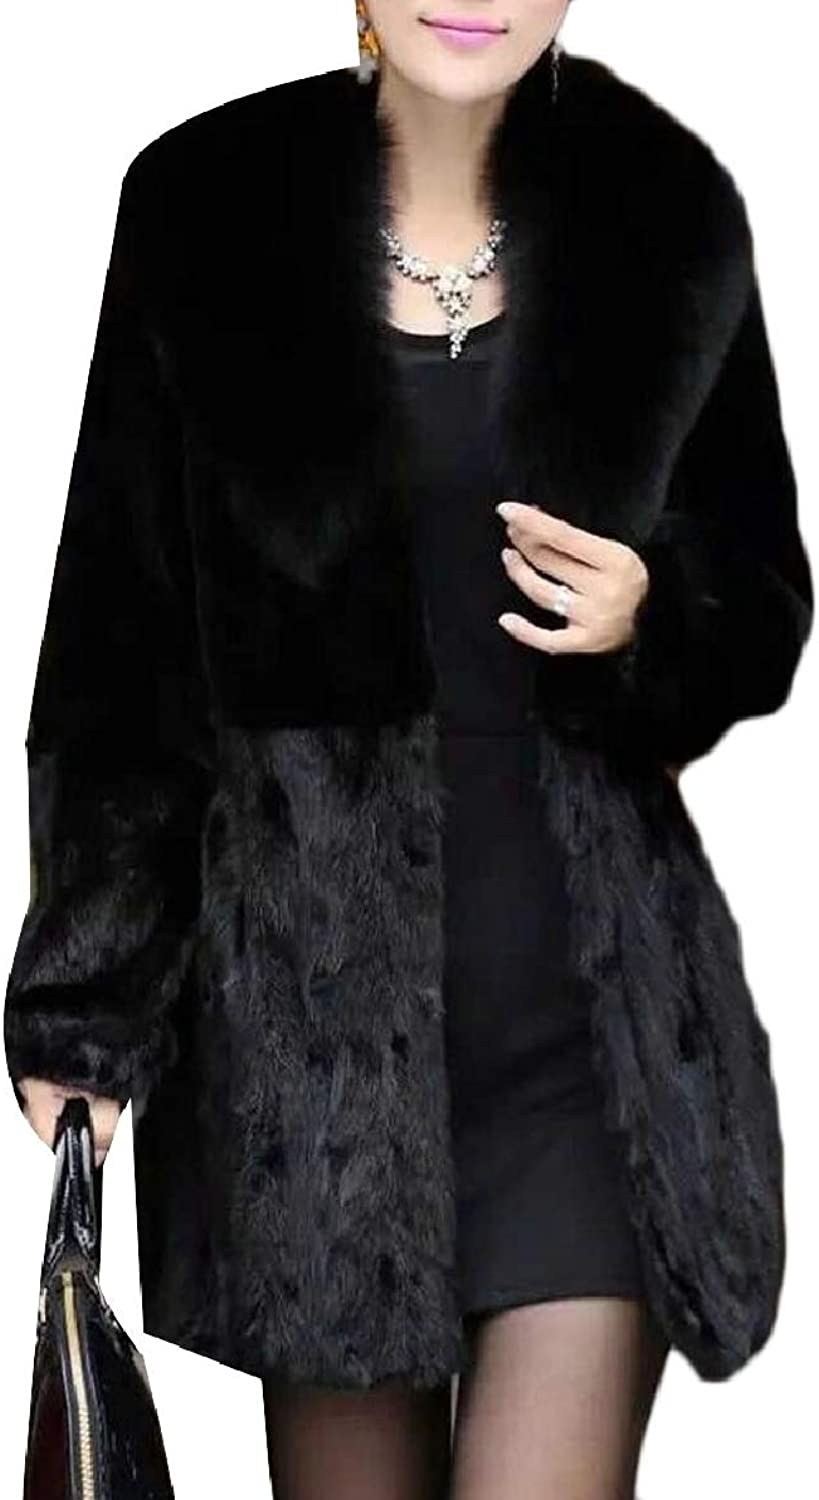 Xswsy XGCA Women's Thick Soft Fluffy Faux Fur Coat Cardigan Parka Jacket Outerwear